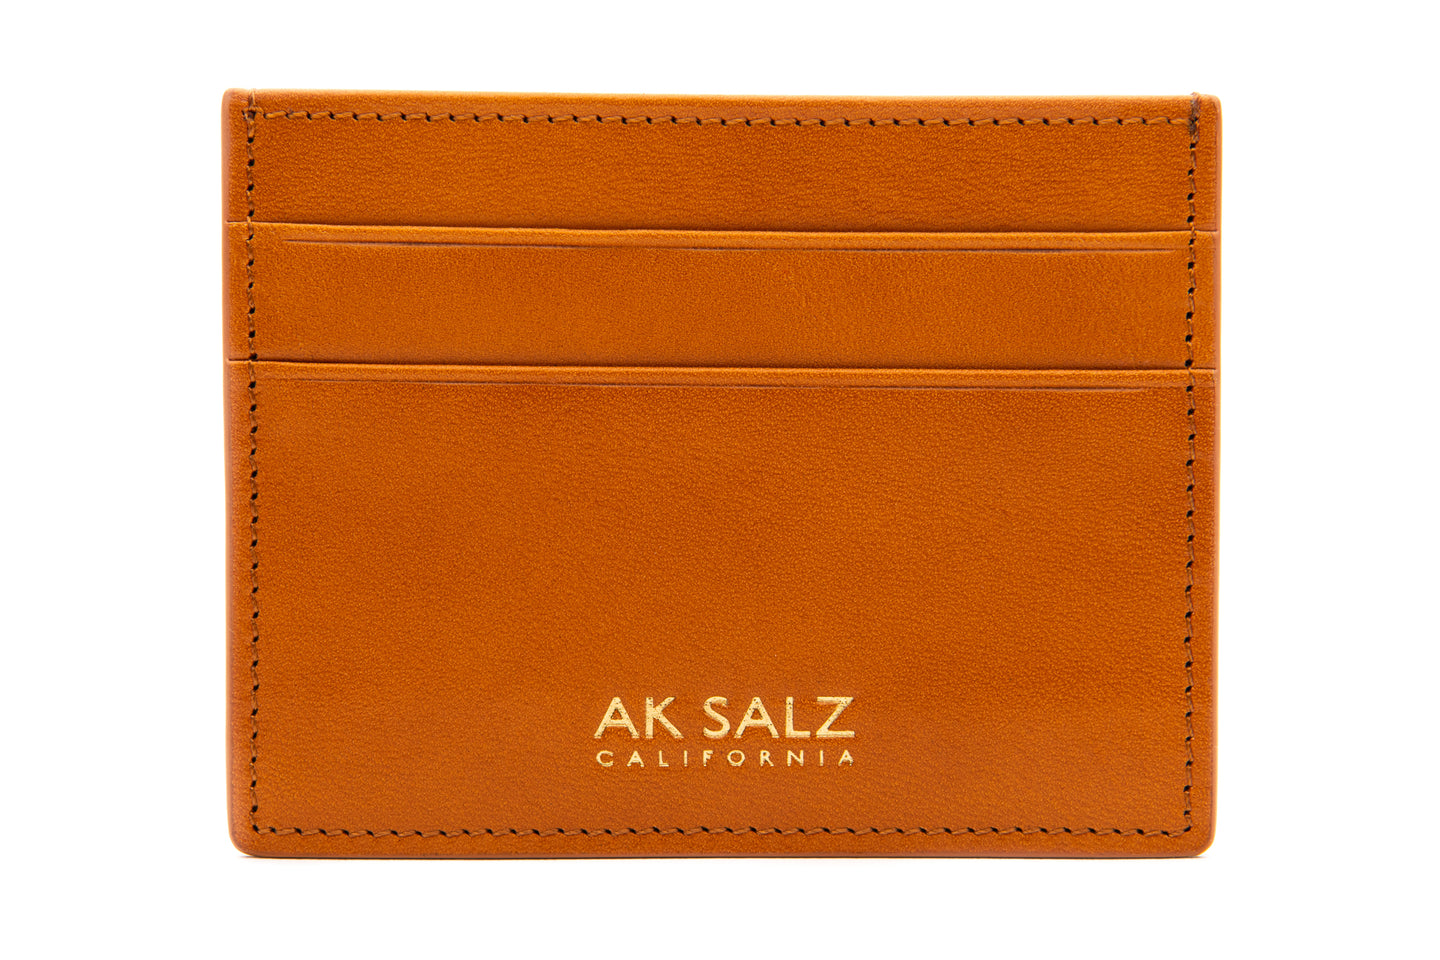 AK Salz Card Case in Vegetable Tanned California Saddle Leather